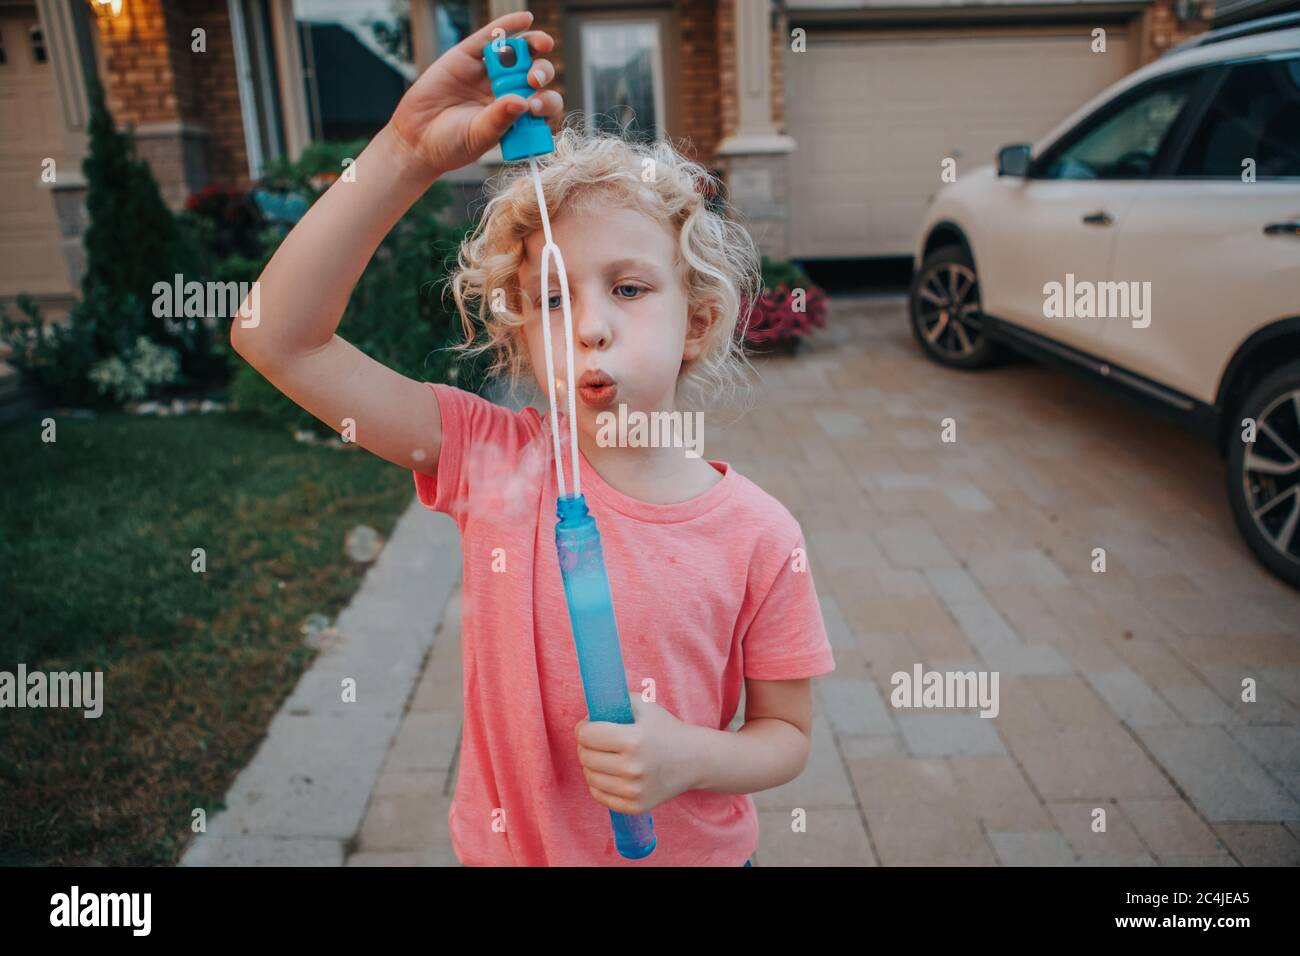 Young Caucasian girl blowing soap bubbles on home front yard. Child having fun outdoor on sunset. Authentic happy childhood magic moment. Stock Photo